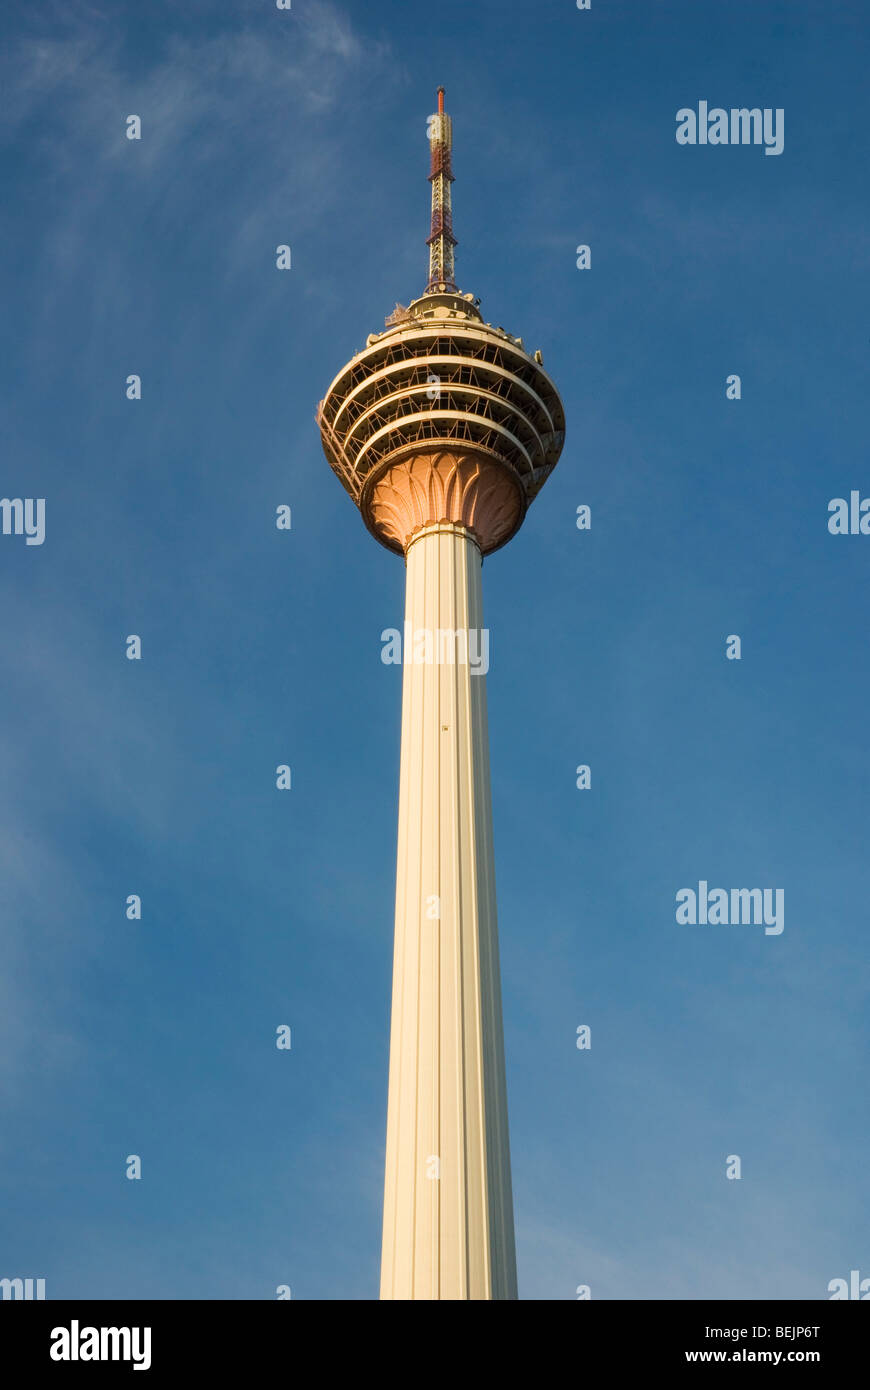 One of the prominent landmarks in Kuala Lumpur, Malaysia - KL Tower. - Stock Image